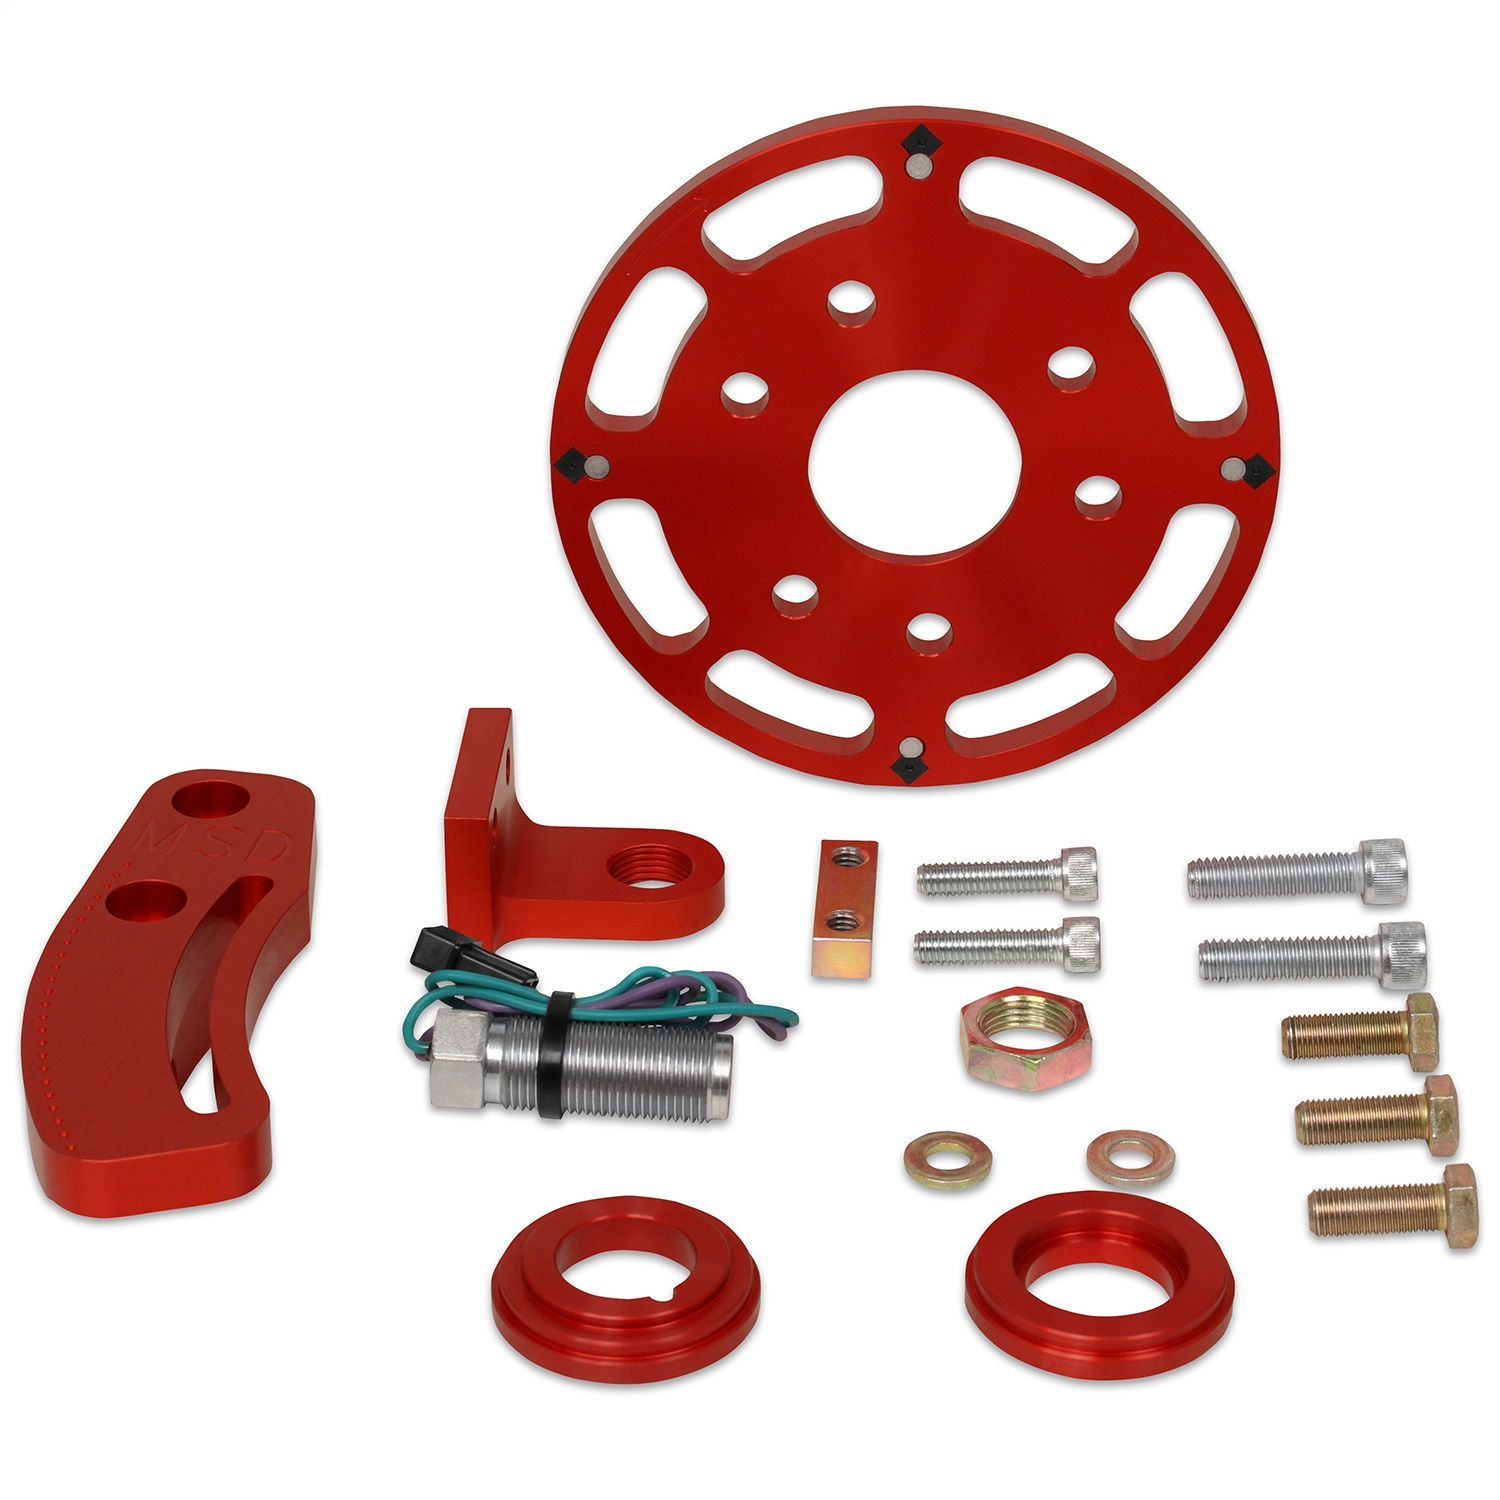 Ignition Crank Trigger Kit